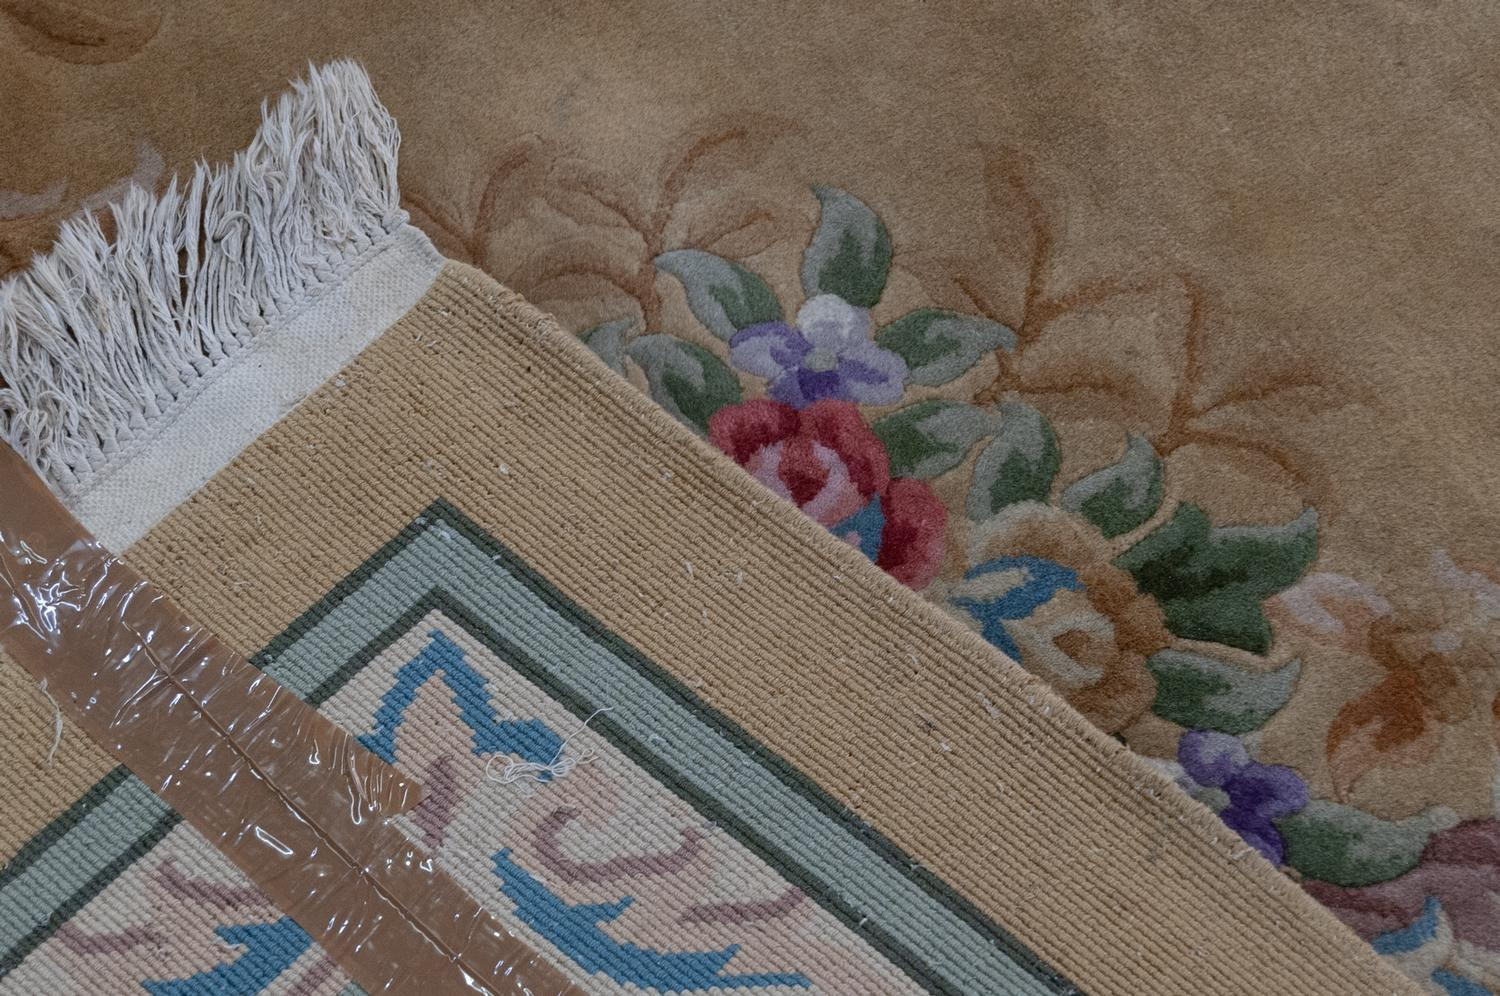 Lot 60 - EMBOSSED CHINESE CARPET of Aubusson design with floral centre medallion and spandrels on an off-